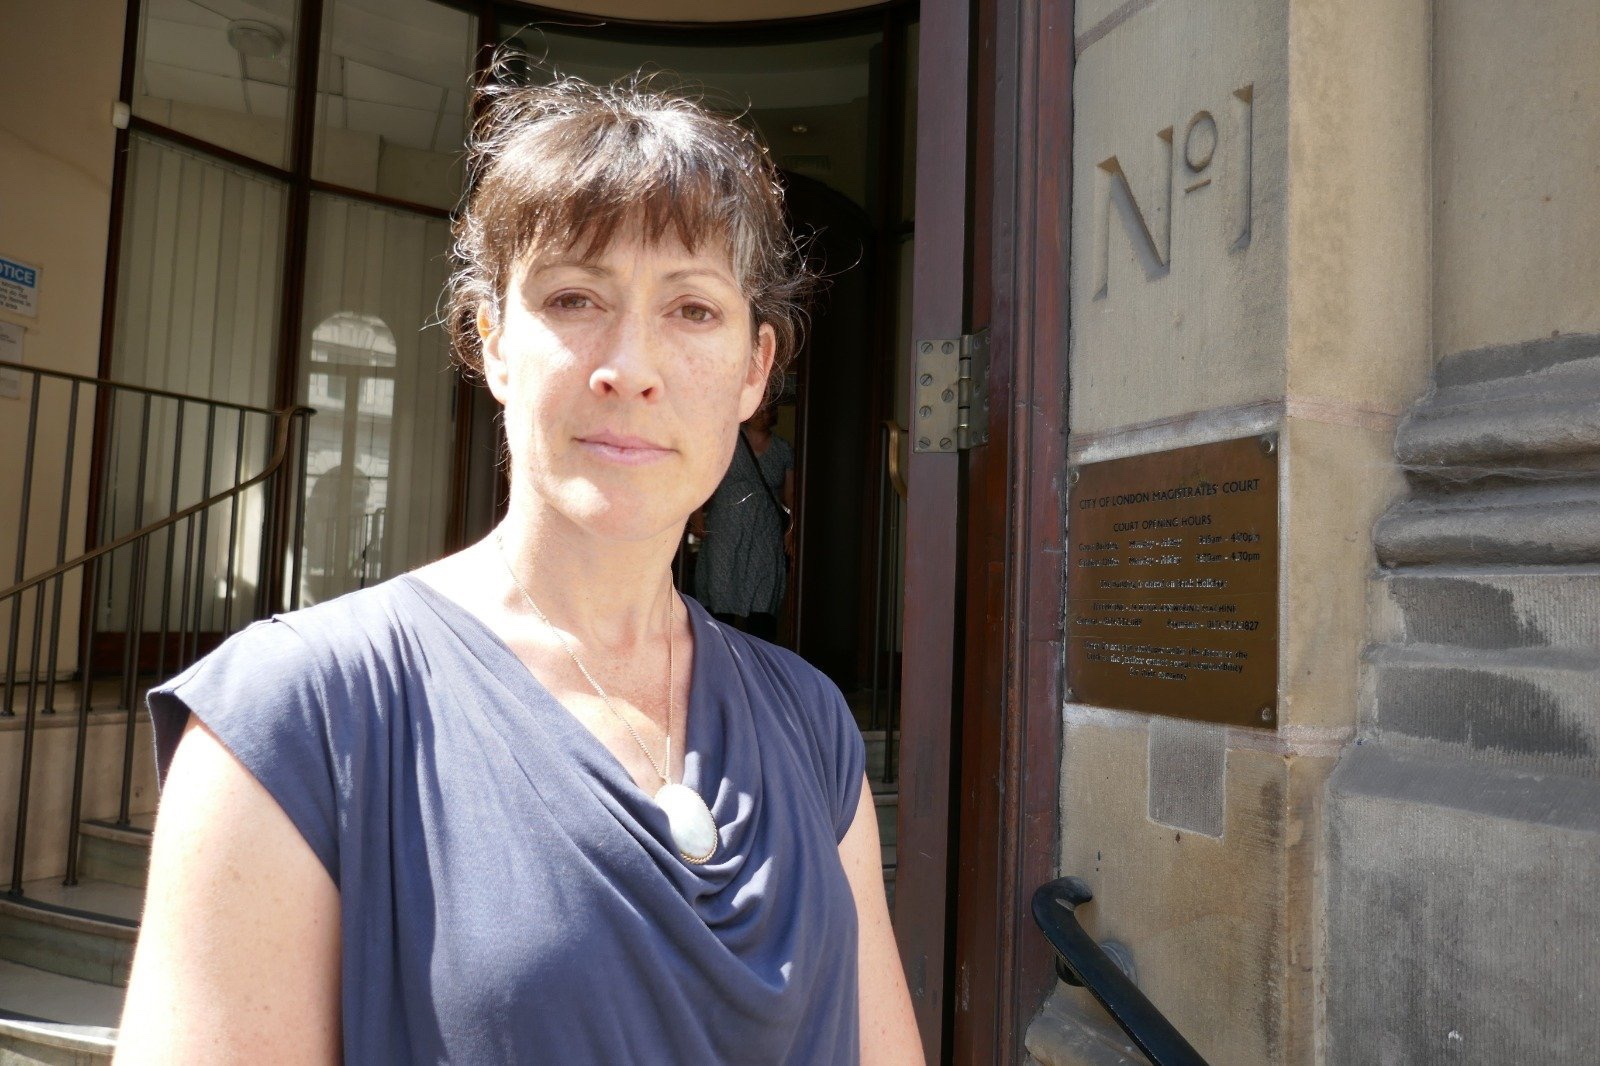 Anthea Lawson, outside City of London Magistrates Court, where she was sentenced for her XR protest at Waterloo